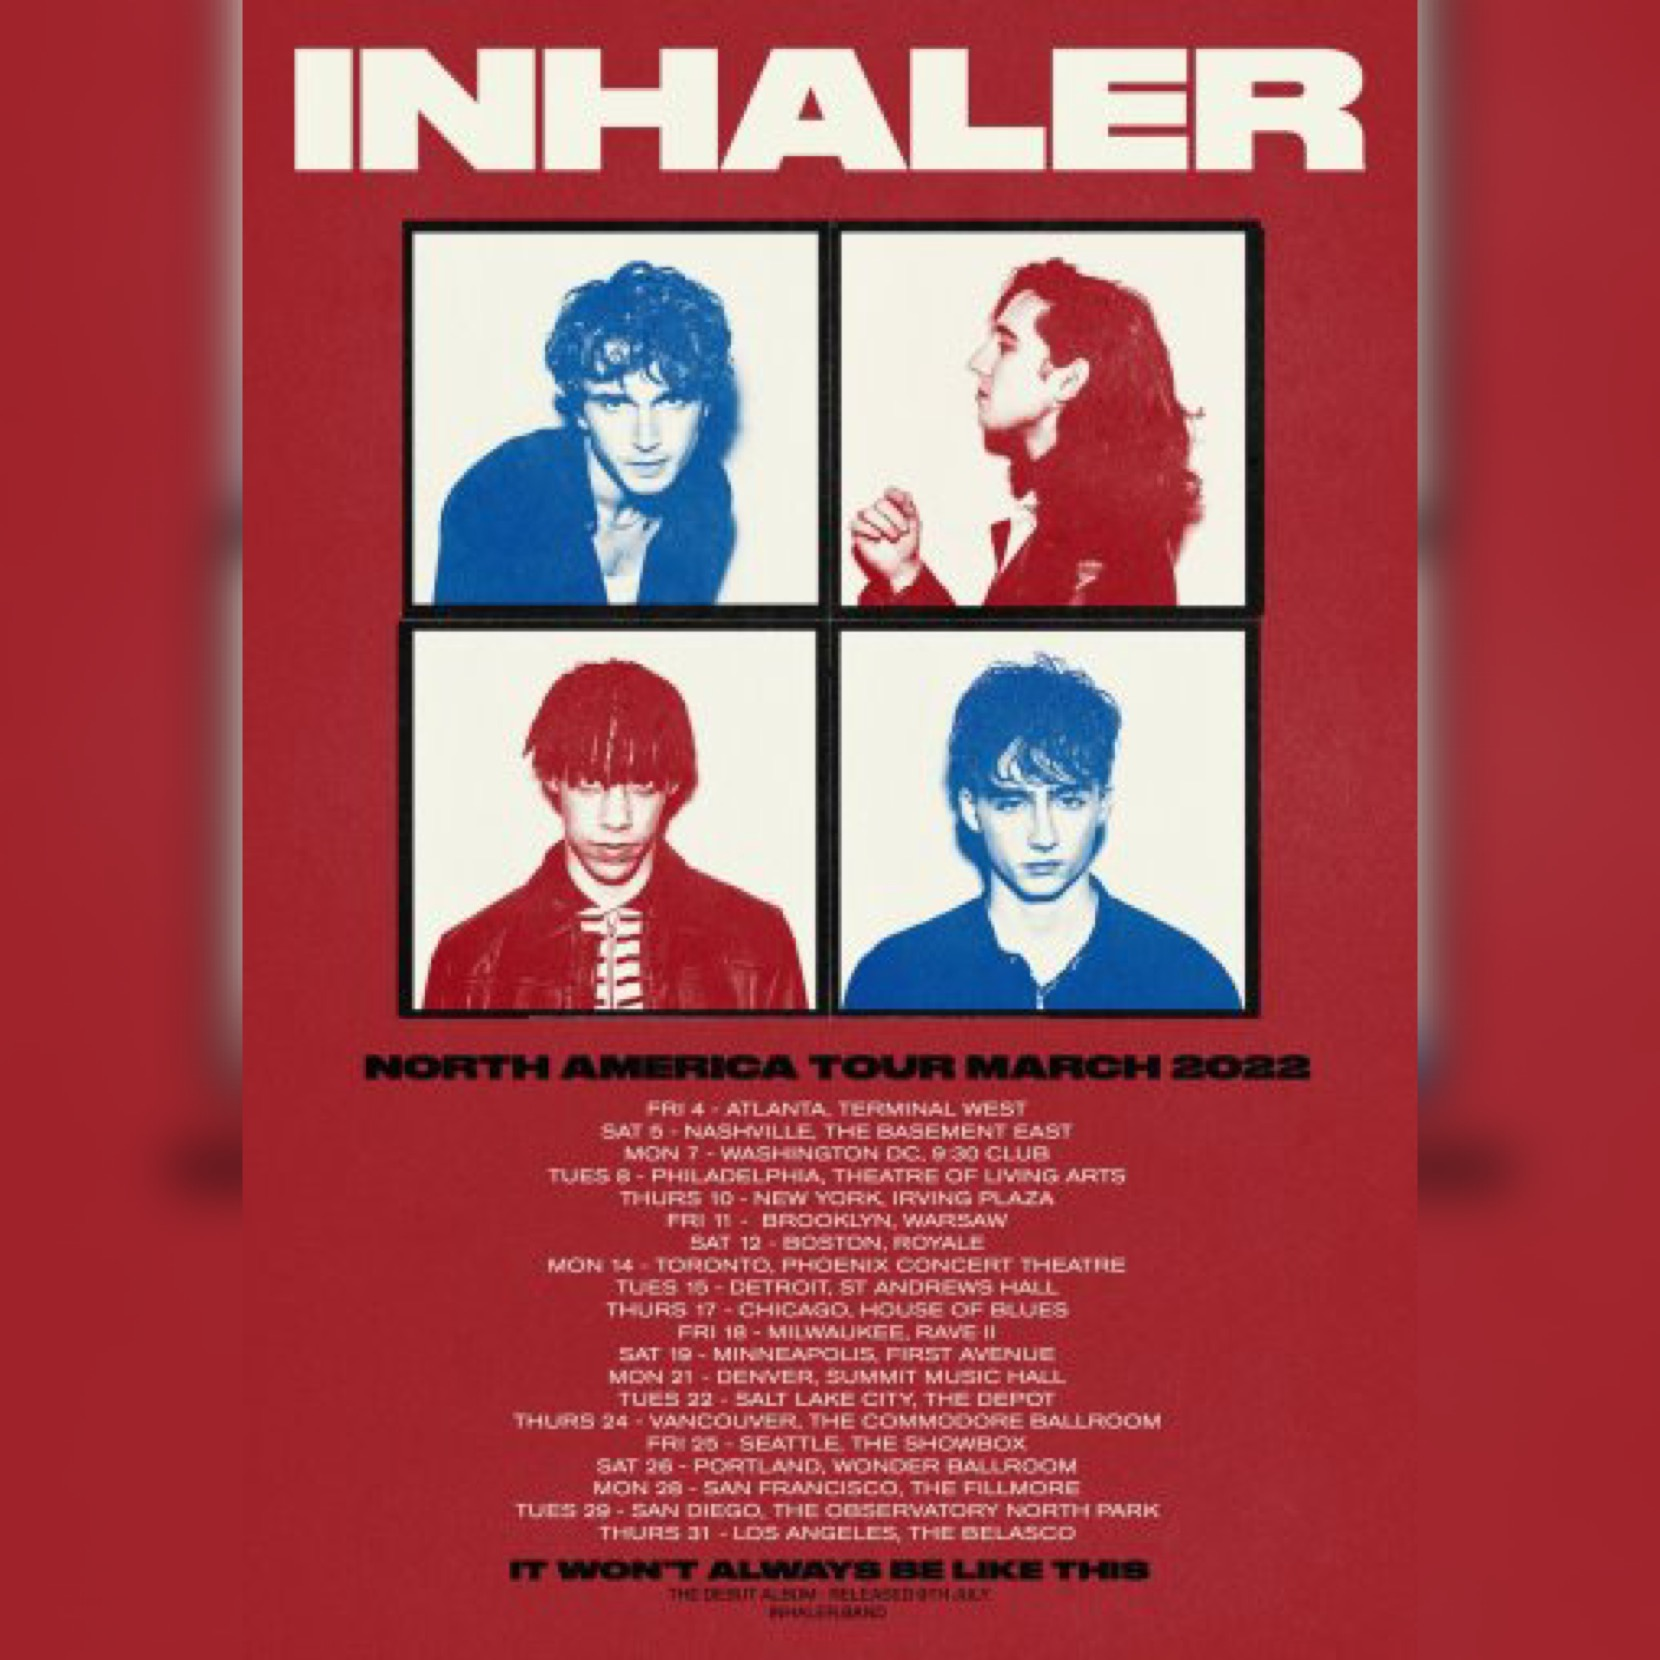 Inhaler Tour poster courtesy of Interscope records for use by 360 Magazine